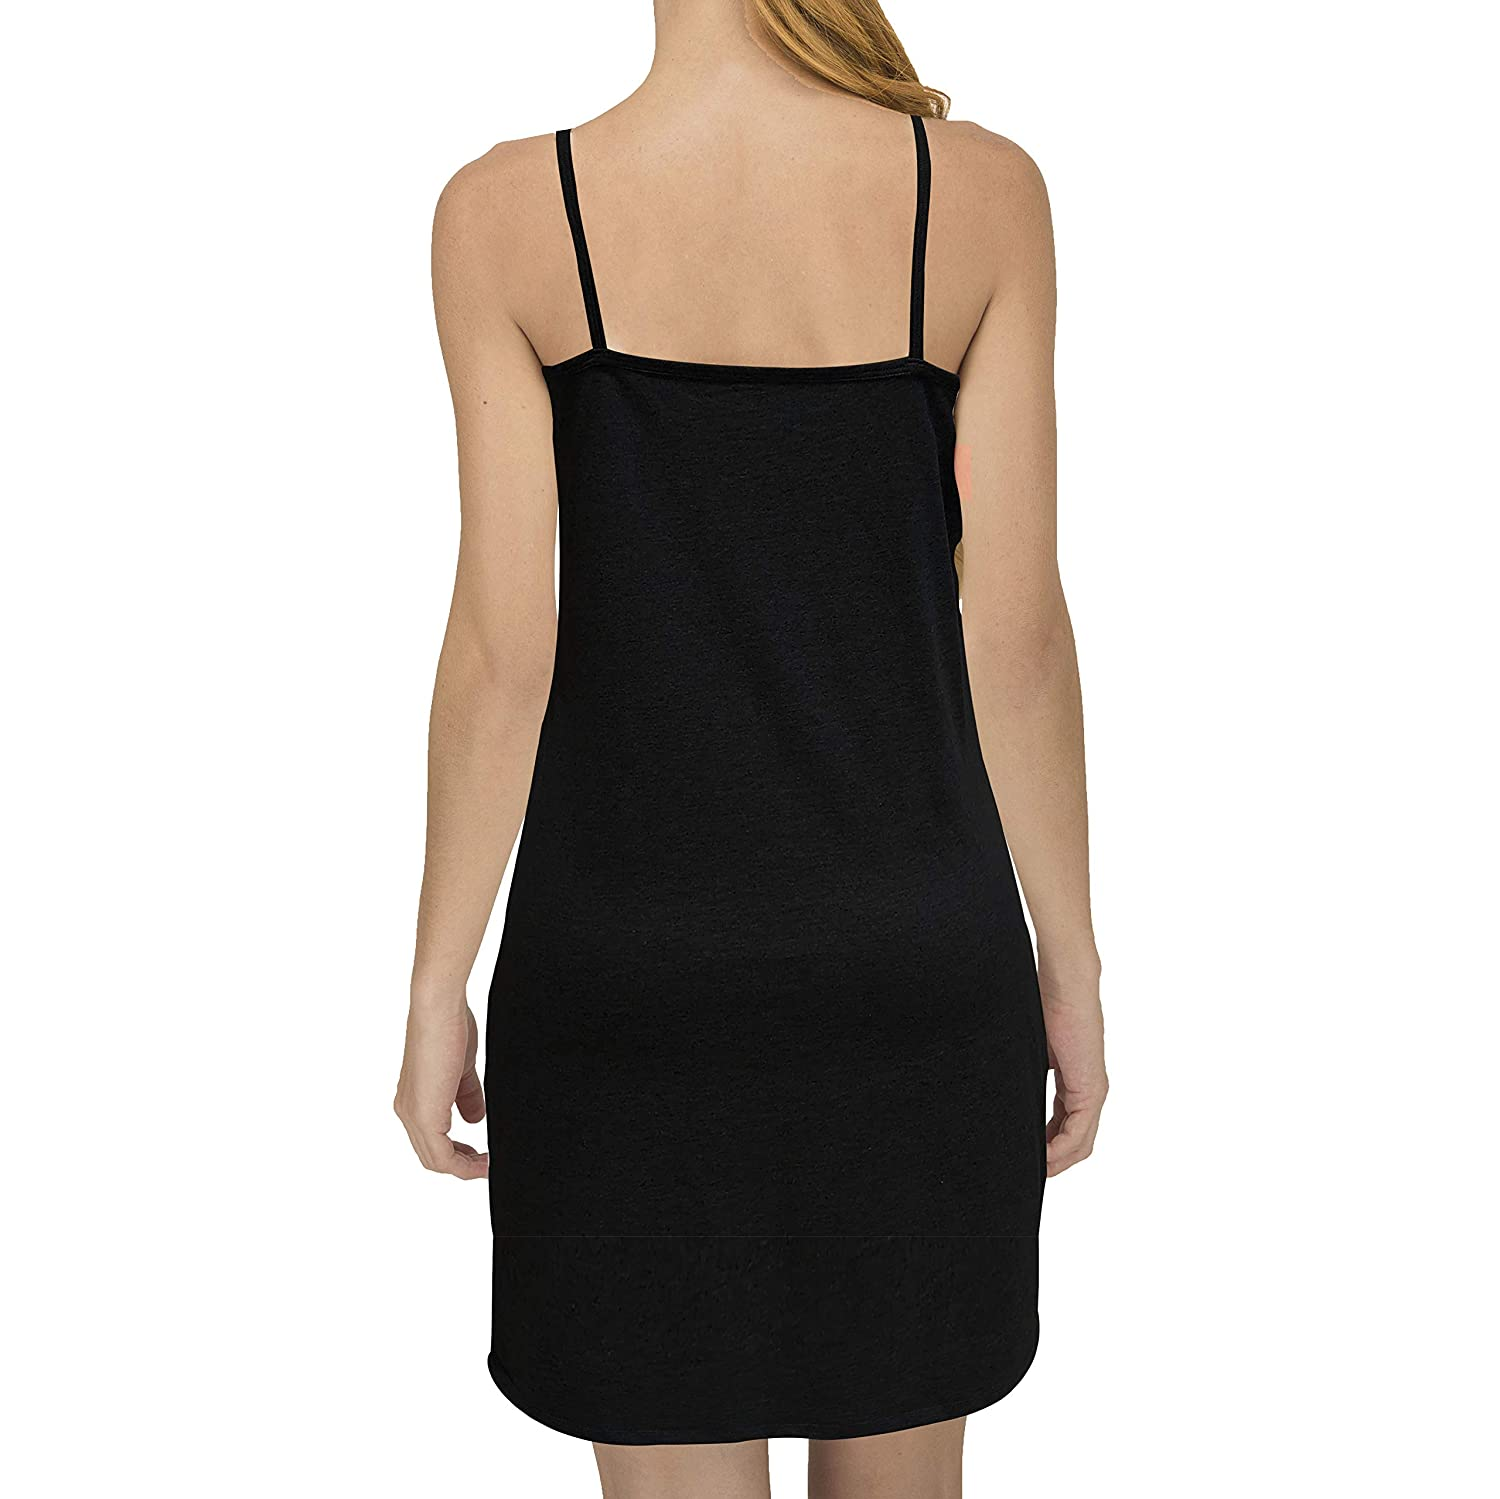 2284aaa55ec Cottonique Women s Hypoallergenic Full Slip Made from 100% Organic Cotton  at Amazon Women s Clothing store